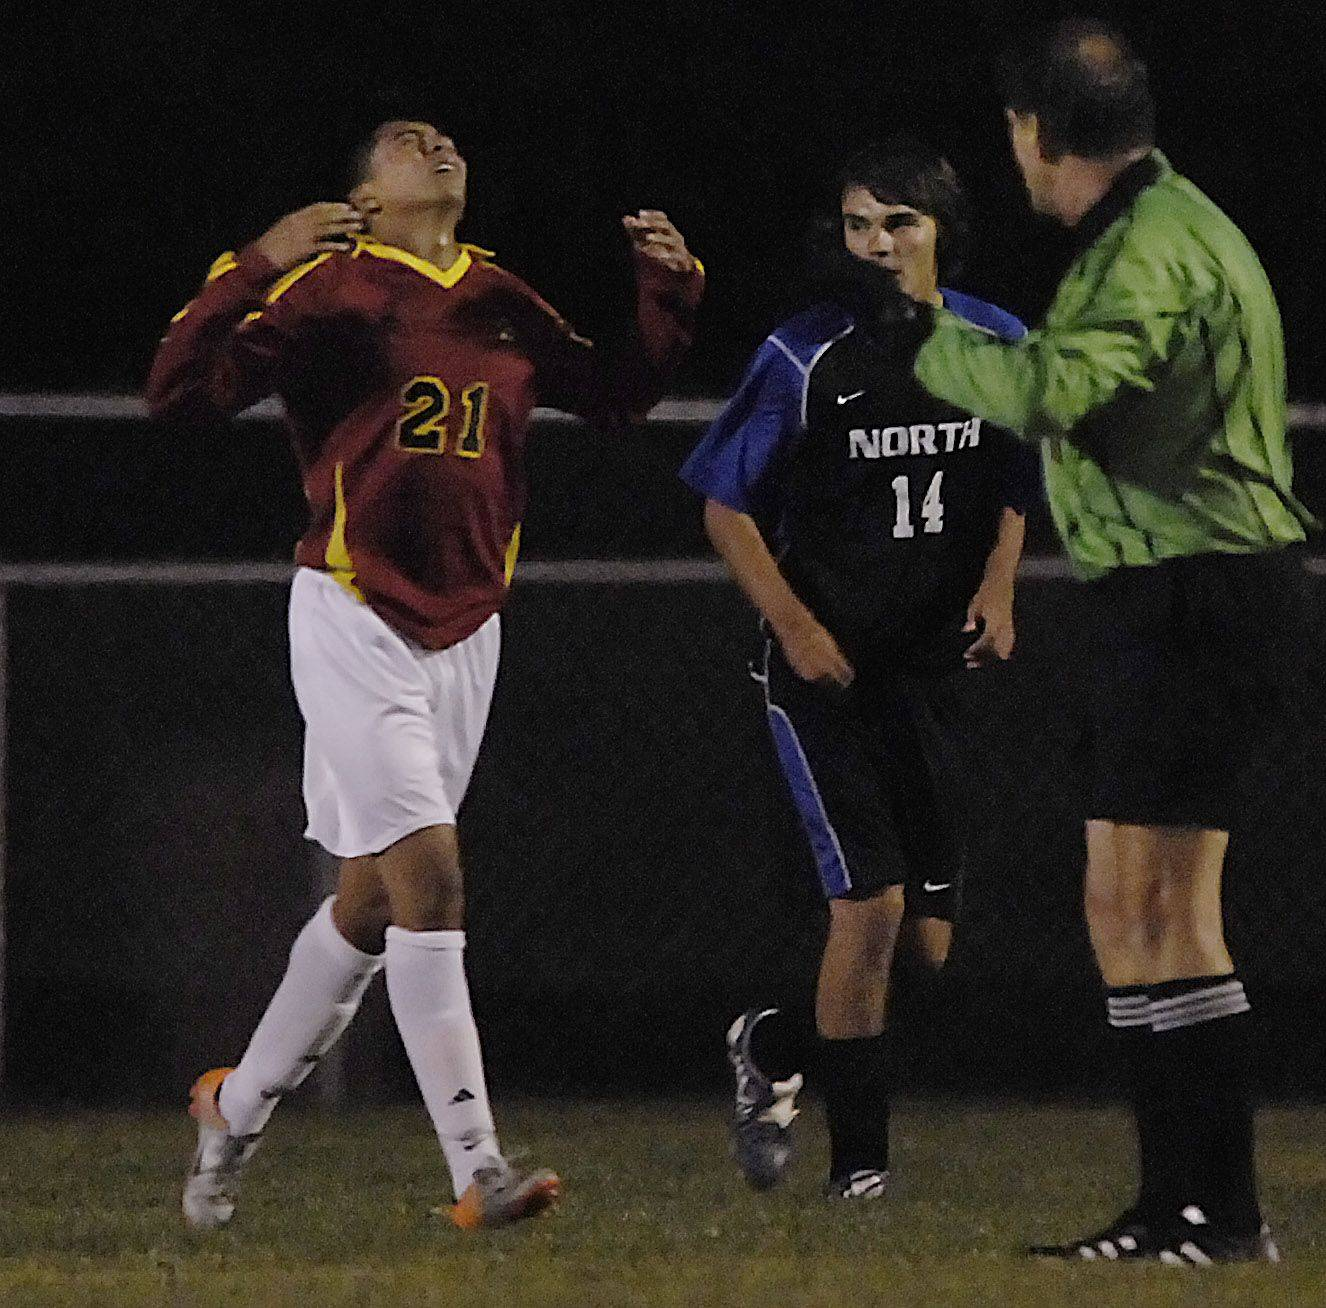 Batavia?s Erick Ontiveros reacts as his goal is called off because of a foul against St. Charles North Wednesday.